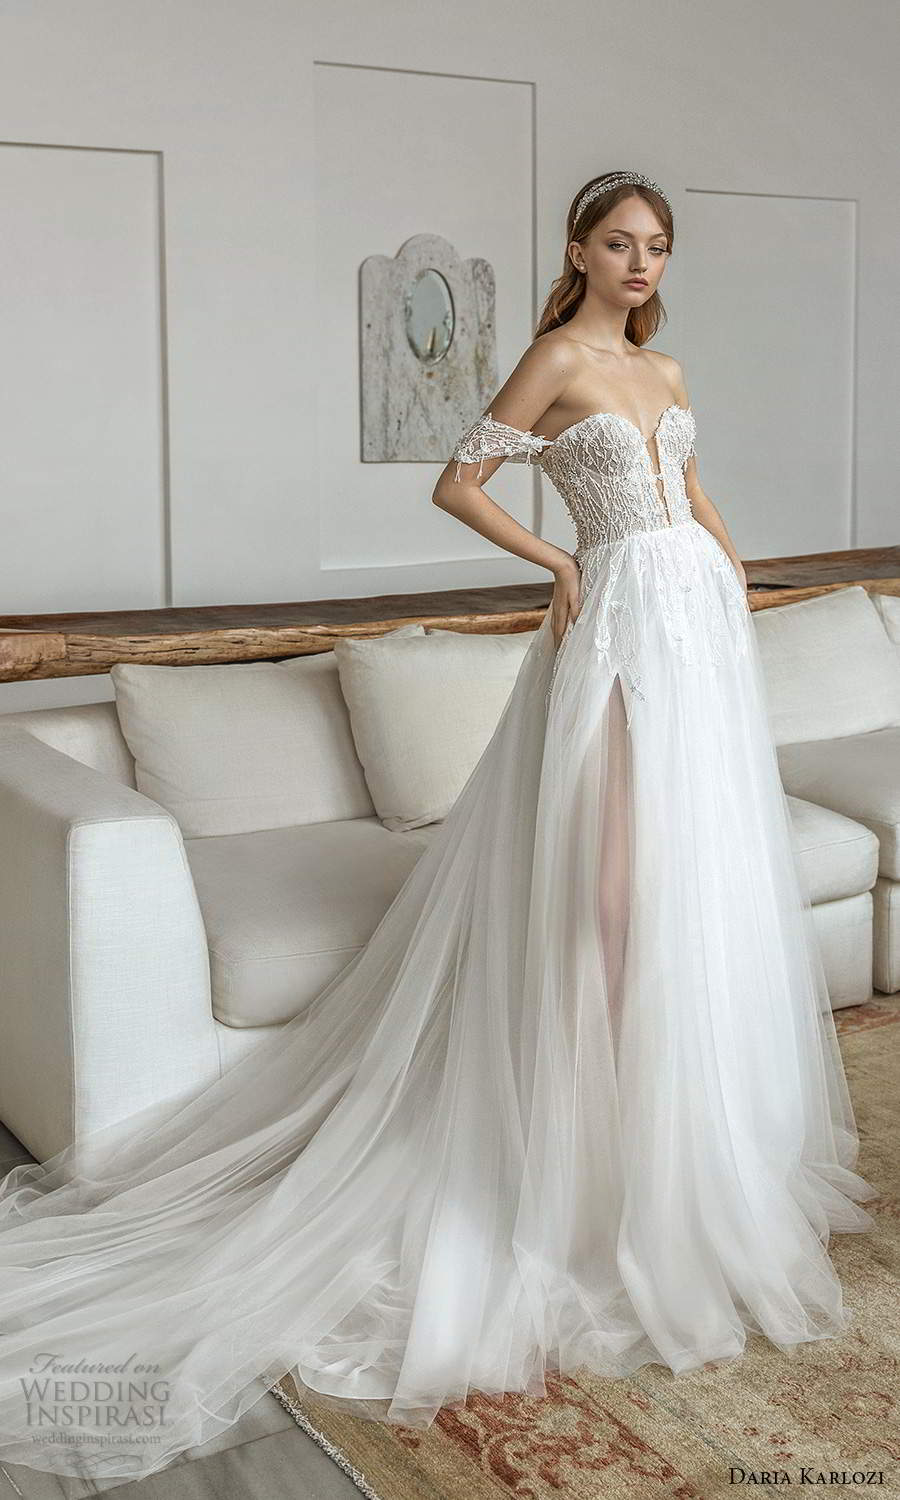 daria karlozi 2021 bridal off shoulder straps plunging sweetheart neckline heavily embellished bodice a line ball gown wedding dress chapel train (12) mv